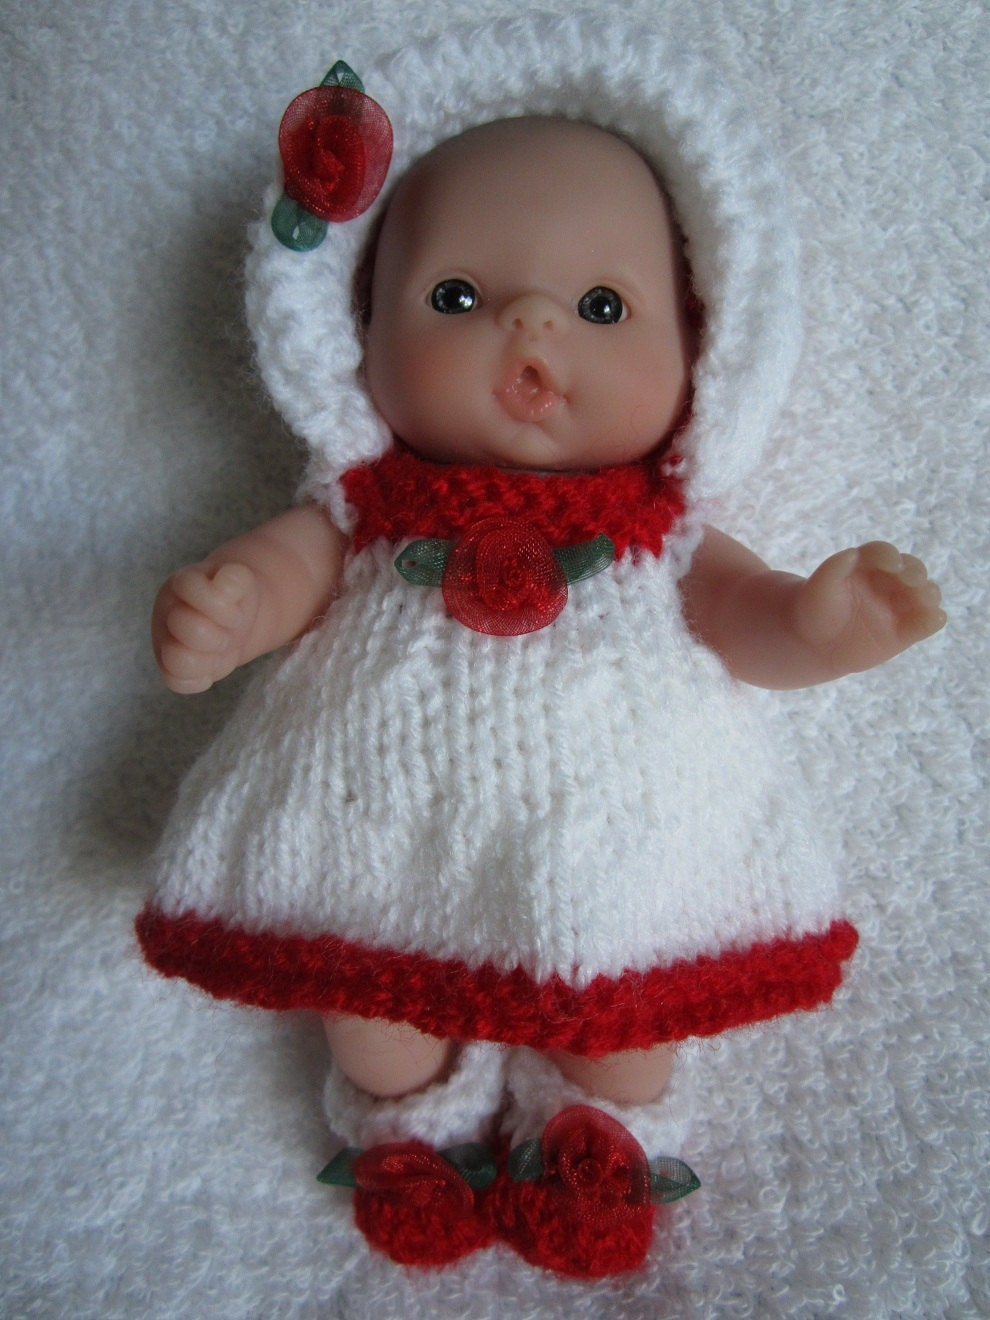 Knitting Baby Doll : Knitting pattern pdf summertime baby doll dress set for by